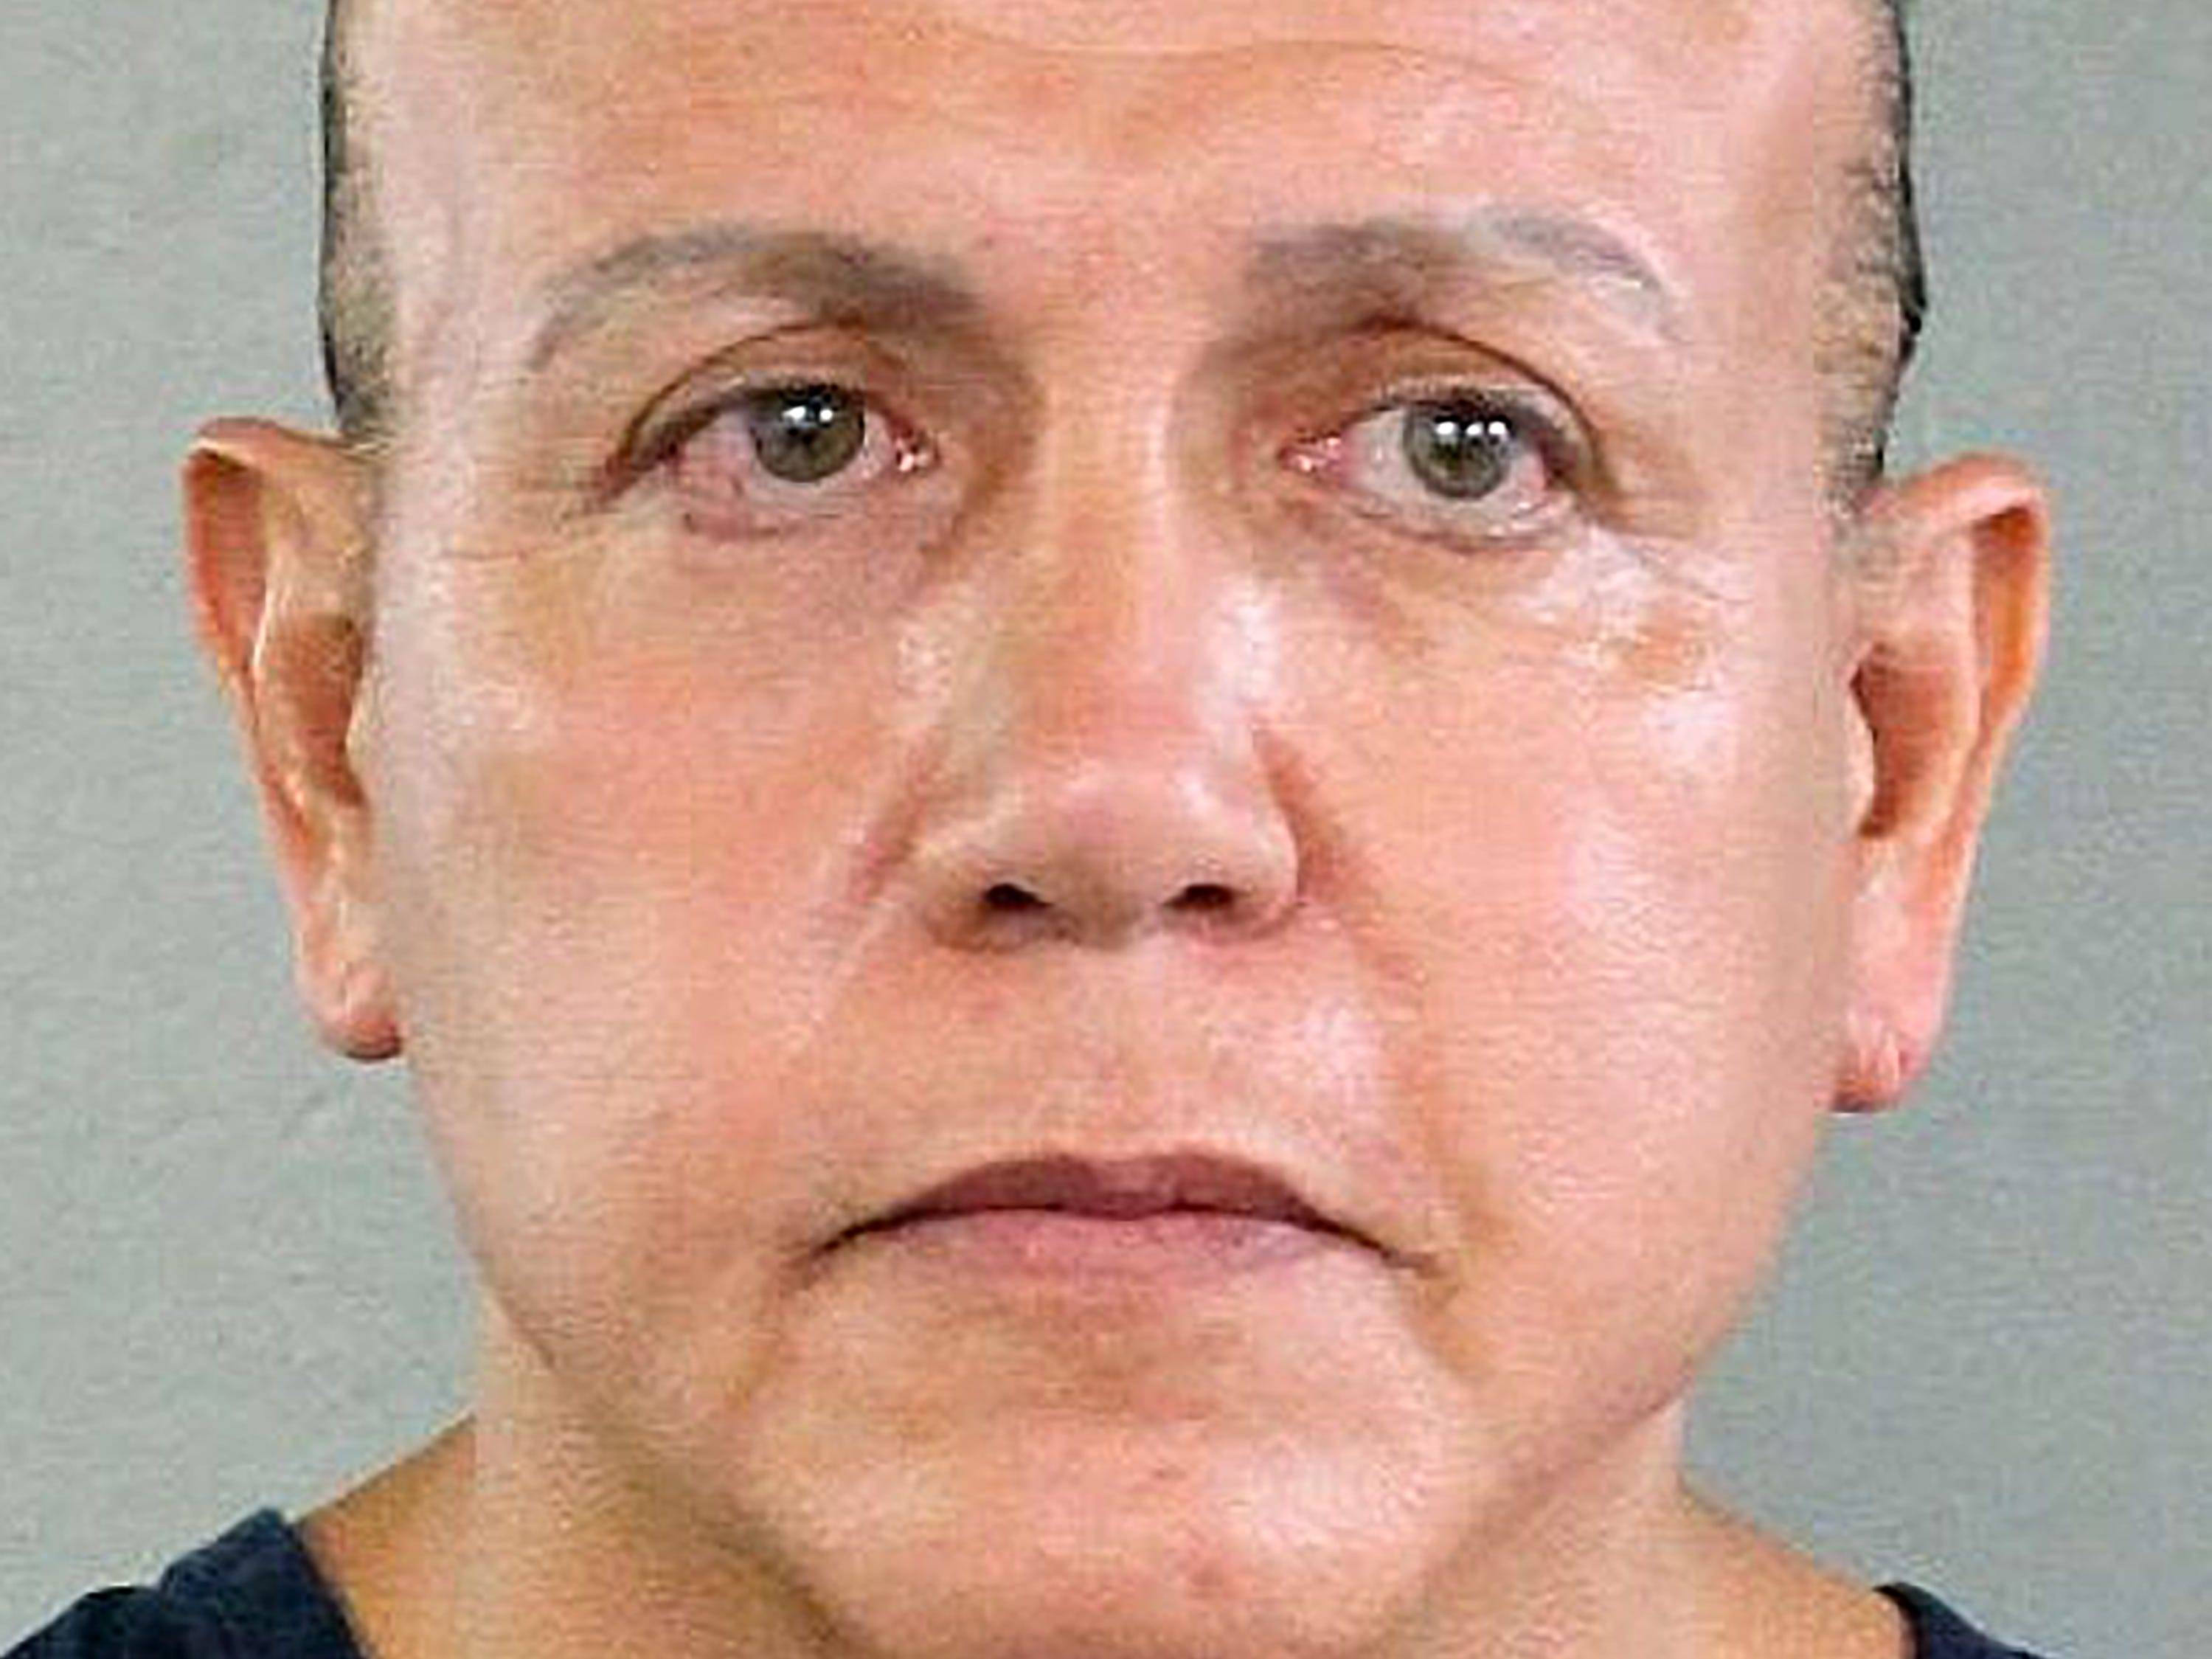 Pipe bomb suspect Cesar Sayoc to be held without bail